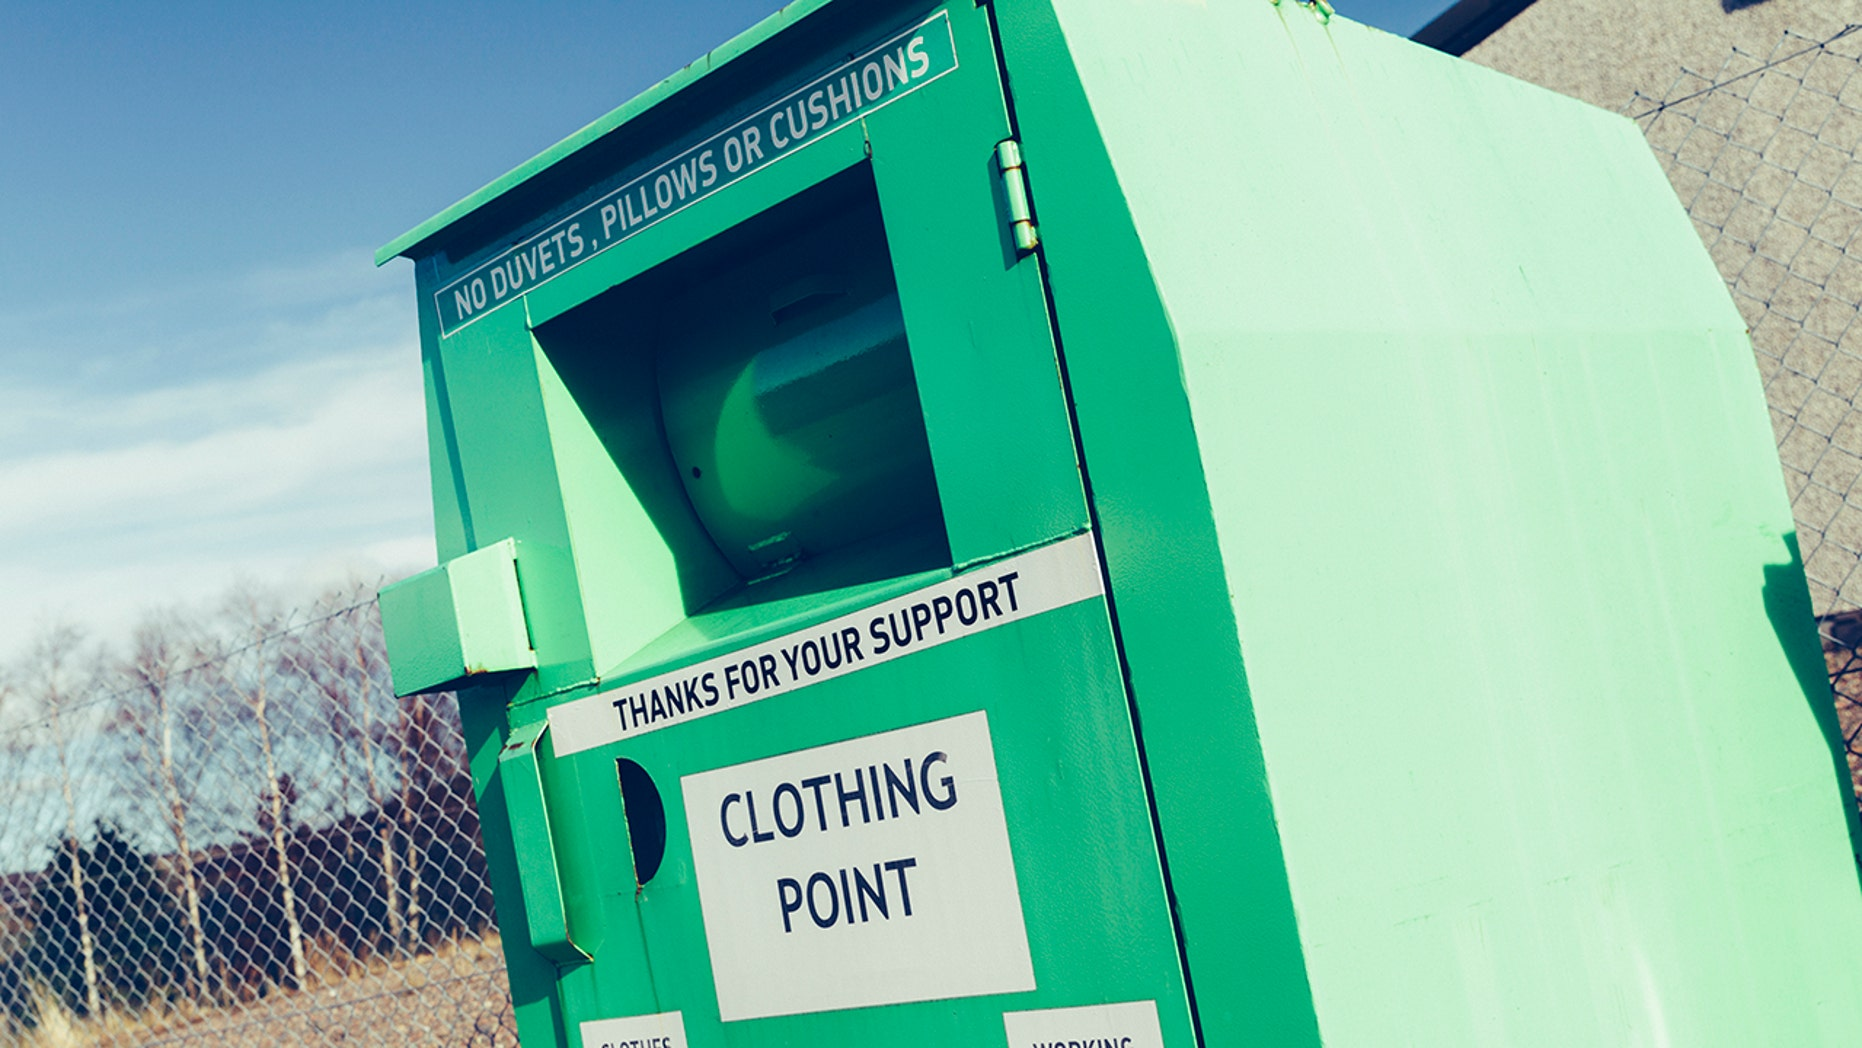 A woman found stuck partially inside a clothing donation bin was pronounced dead Tuesday, Toronto Police said.